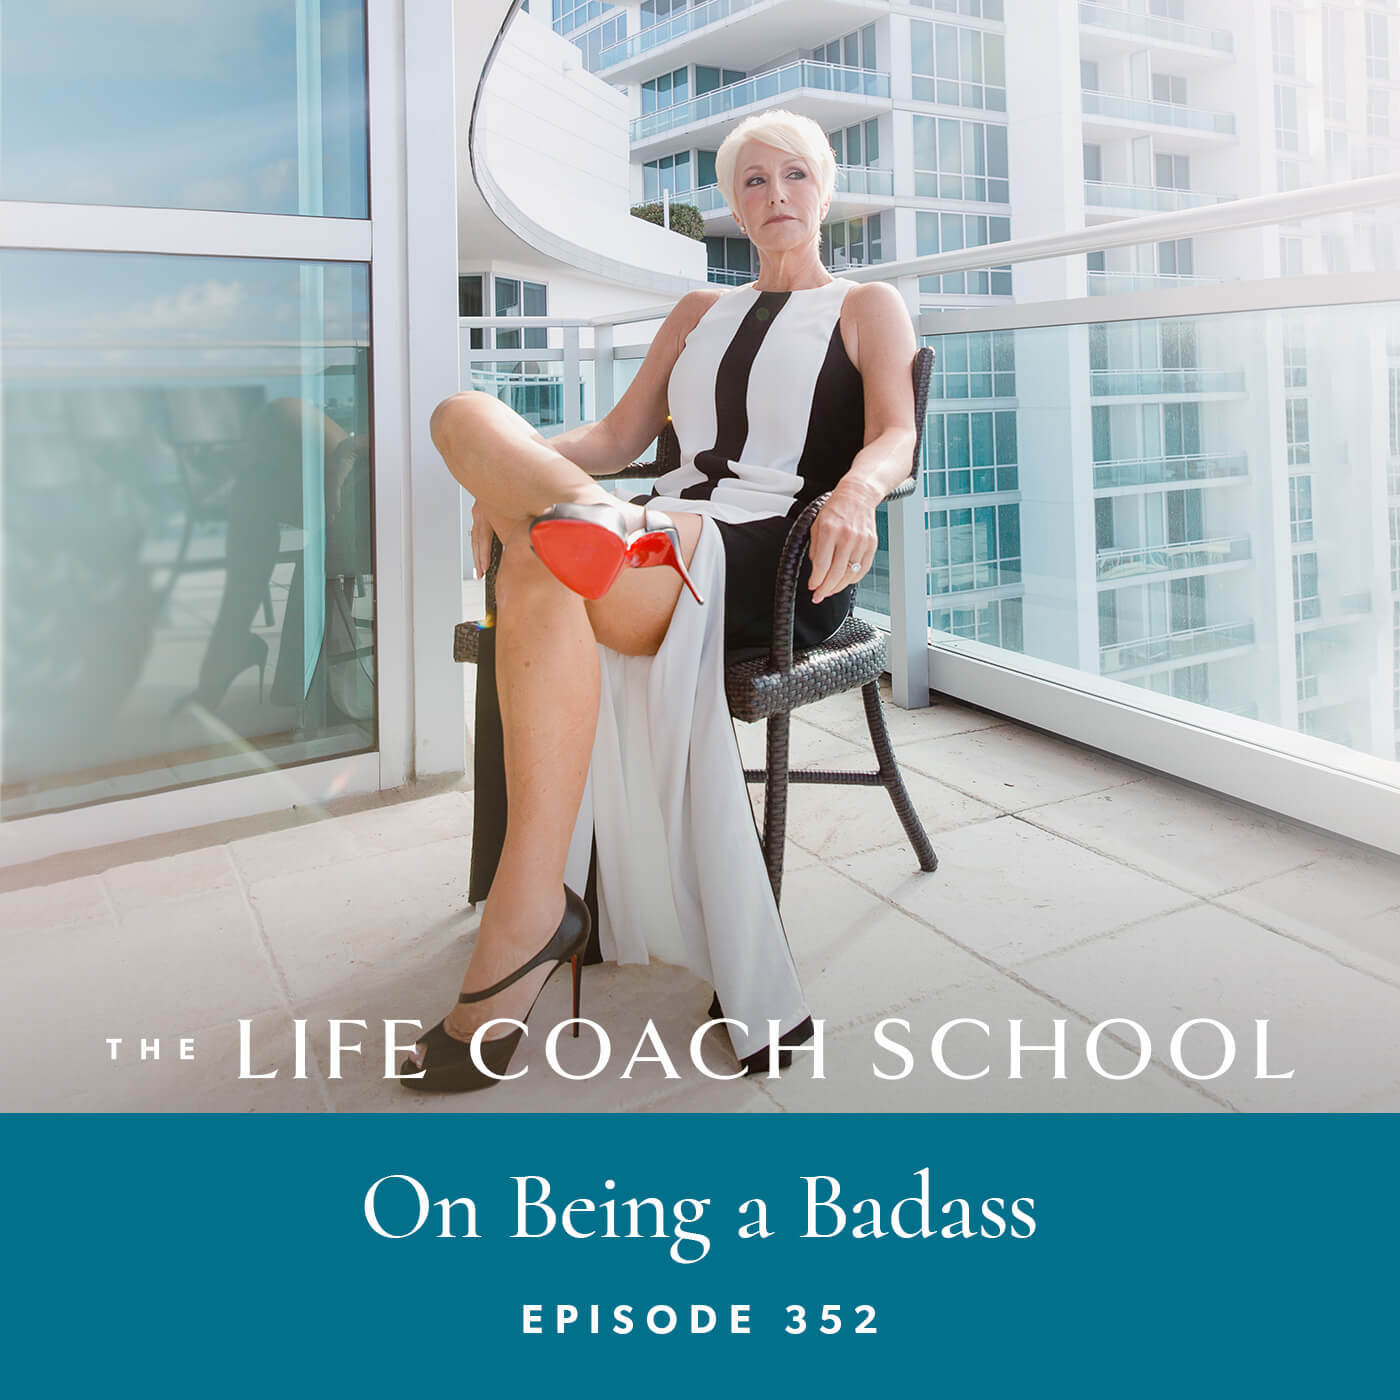 The Life Coach School Podcast with Brooke Castillo | On Being a Badass